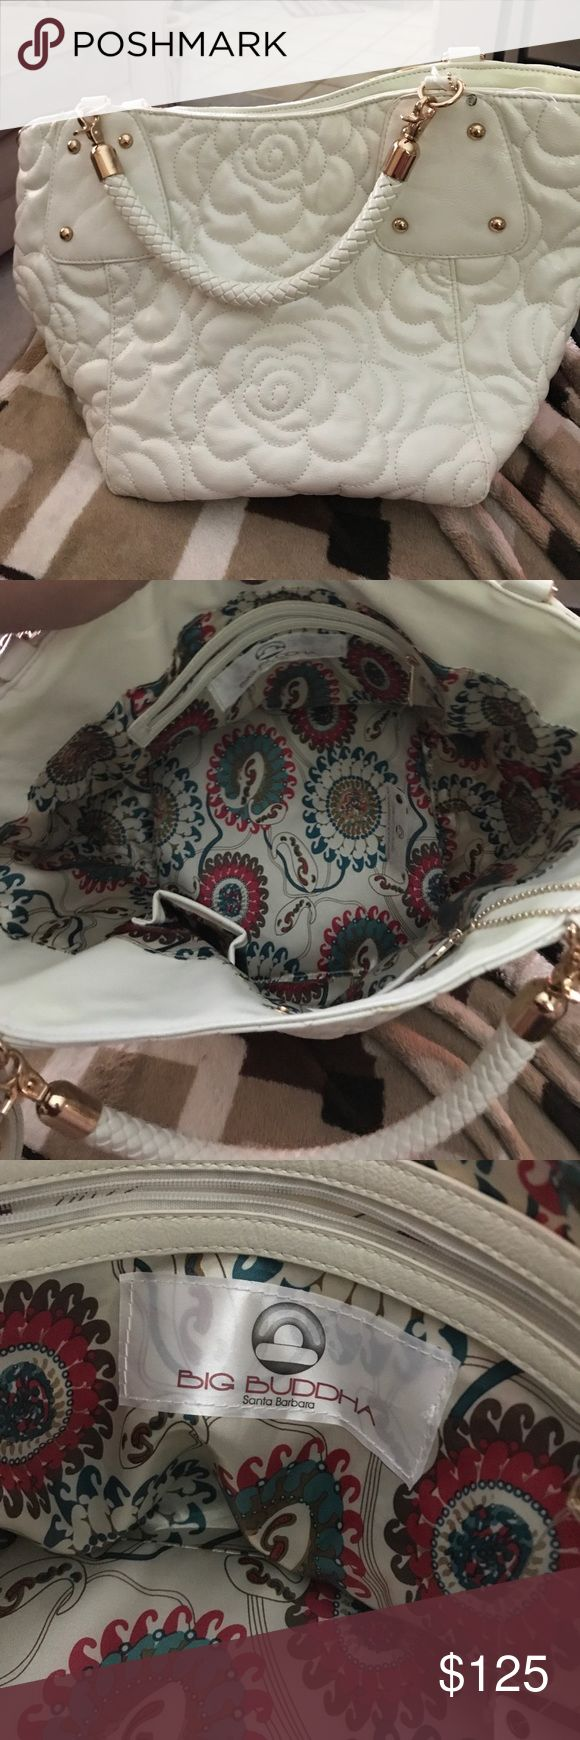 Big Buddha Pocketbook Brand New Never Used Big Buddha White Pocketbook with attachable strap. The outside is a white flower design with rounded gold studs. The inside has a multicolor design with 3 pockets, one with a zipper. Big Buddha Bags Shoulder Bags